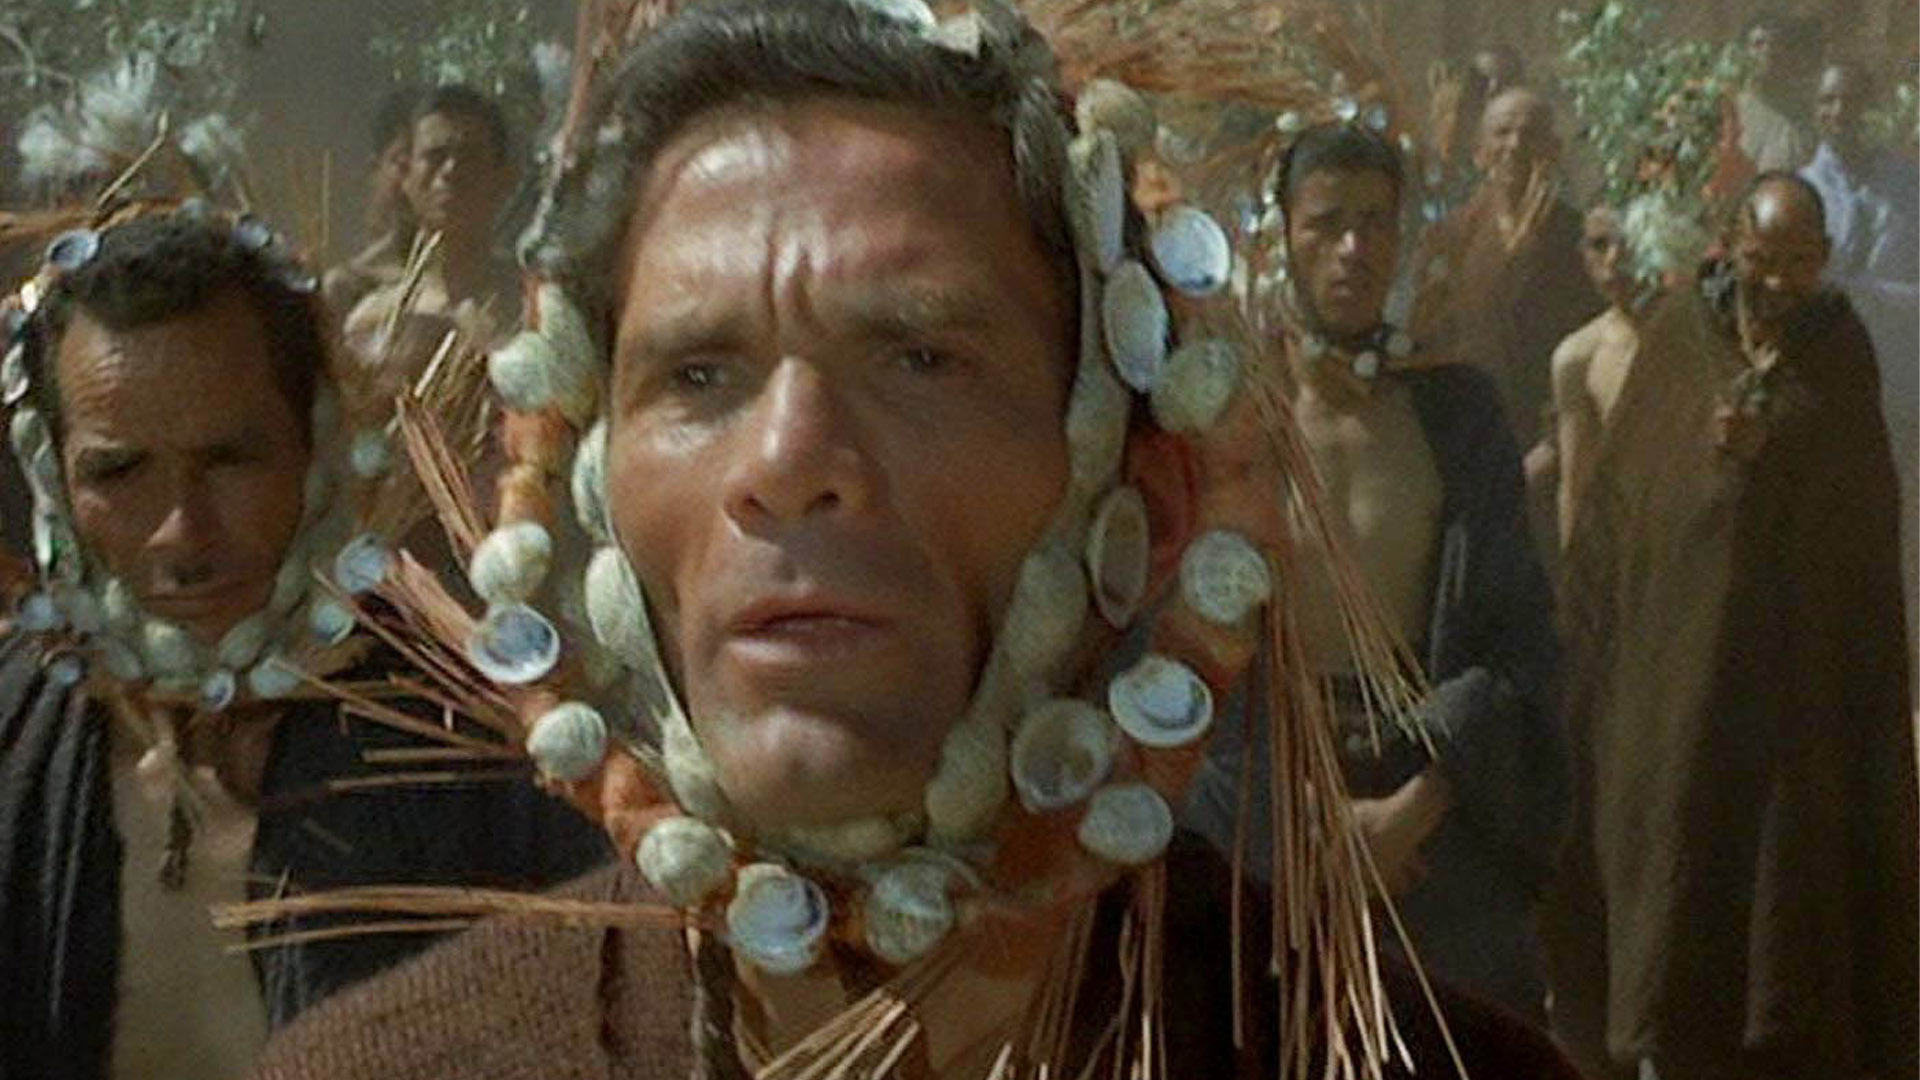 Trailer - Oedipe Re by Pier Paolo Pasolini 1967